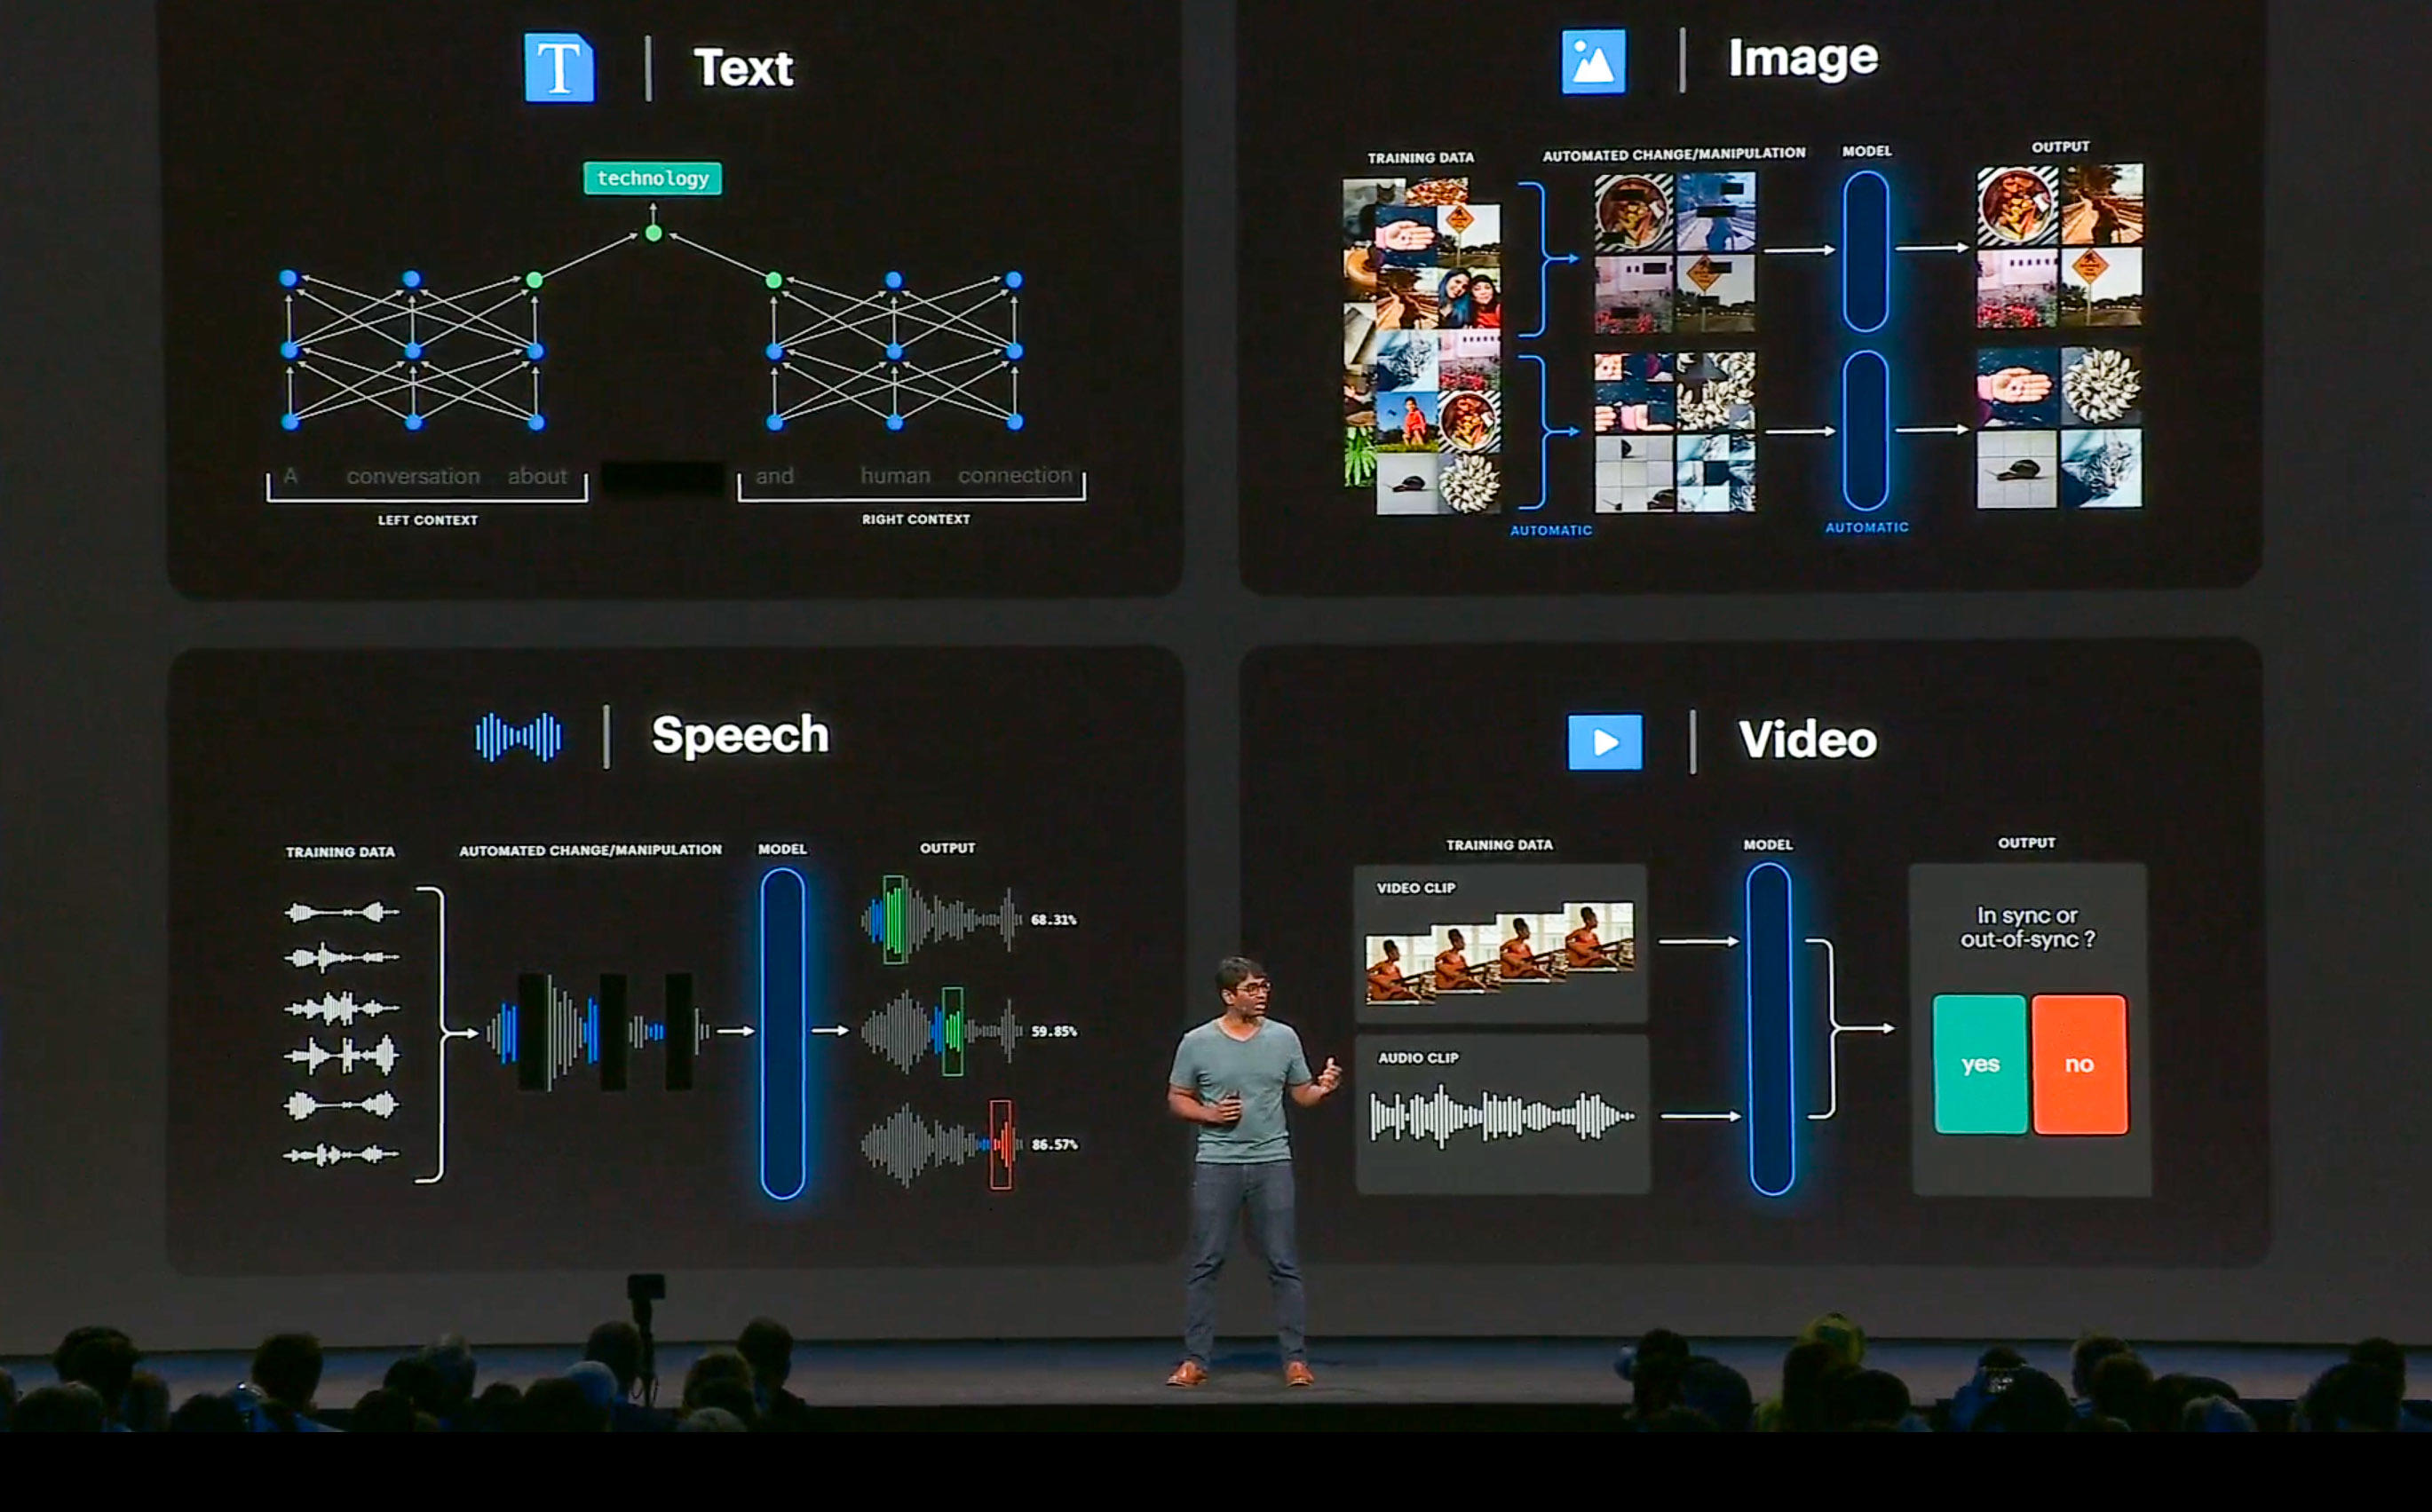 Facebook uses self-supervised AI training technology to process speech, text, video and photos, said Manohar Paluri, an AI research leader, at Facebook's F8 conference.